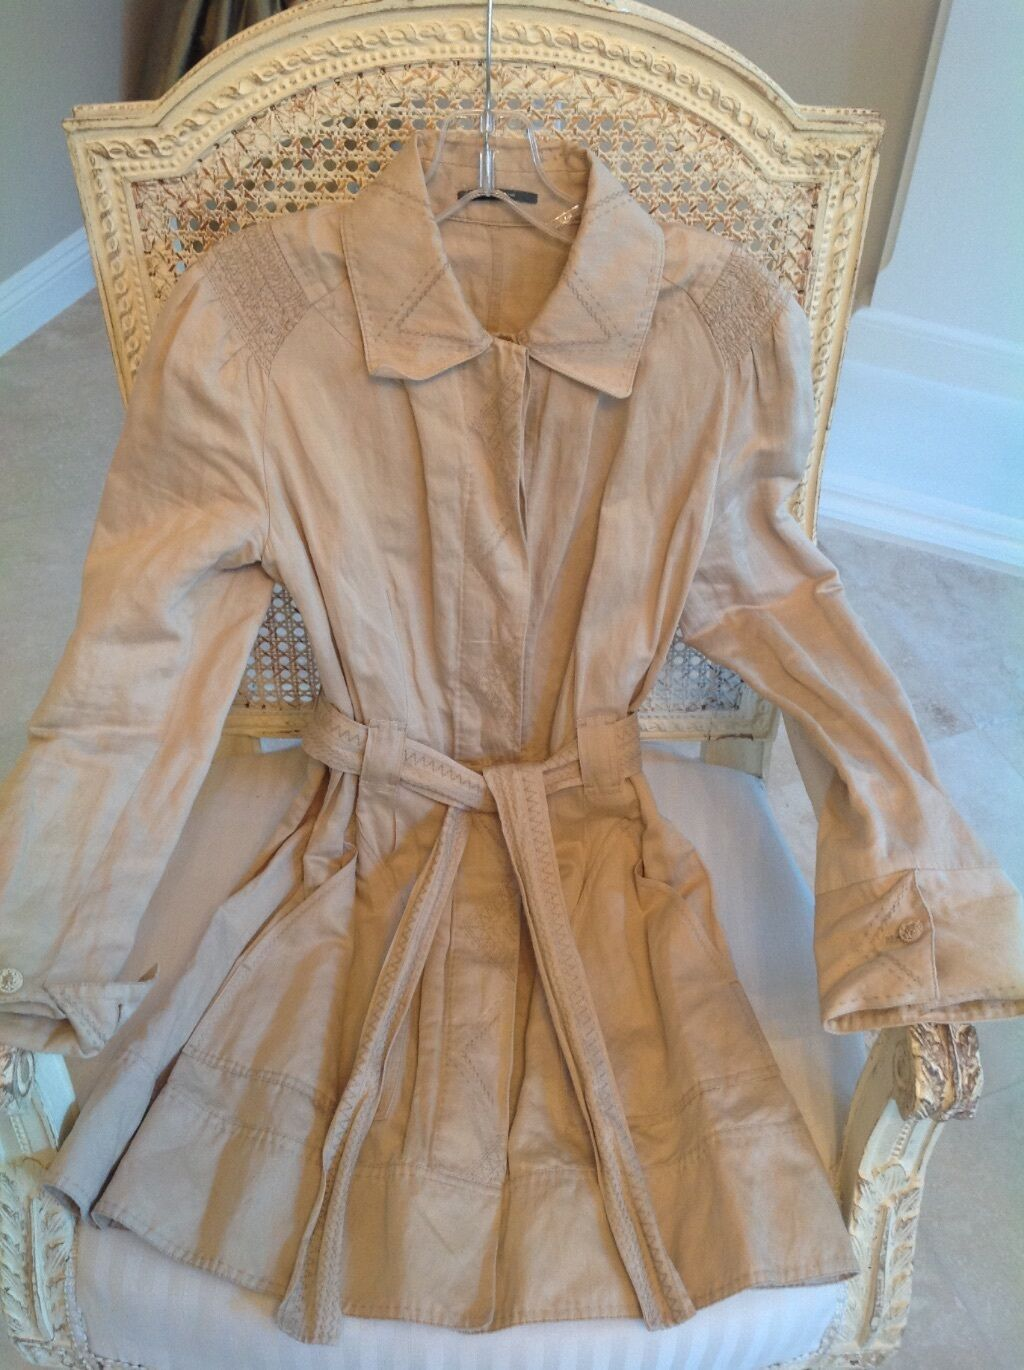 Elie Tahari BEIGE BEIGE BEIGE EMBROIDERED TRENCH COAT, Size S P 9a8a25